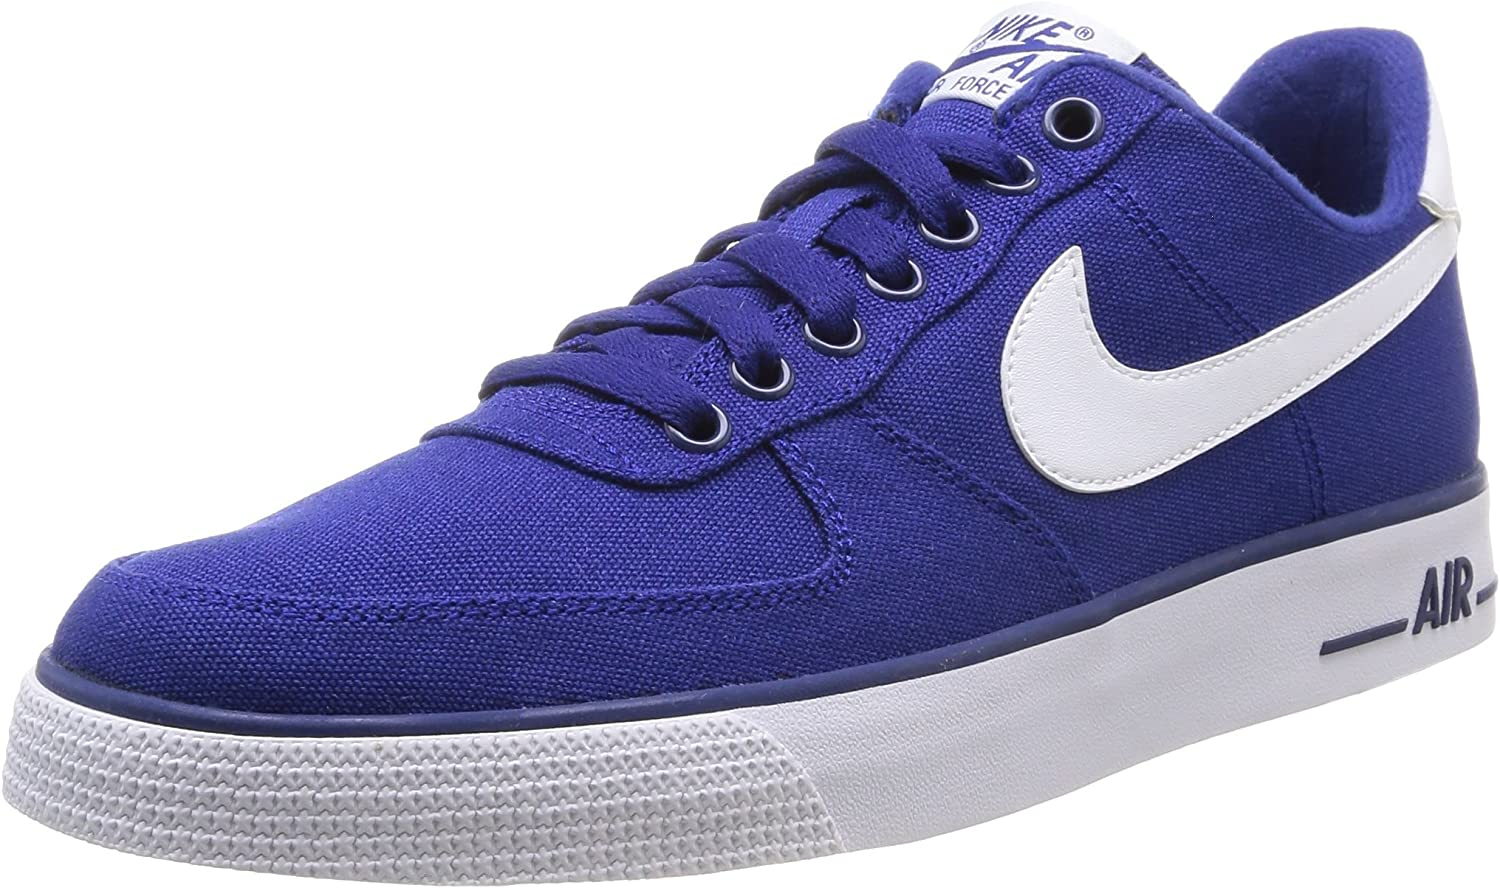 Nike Air Force 1 Ac, Men's Sports and Outdoor shoes